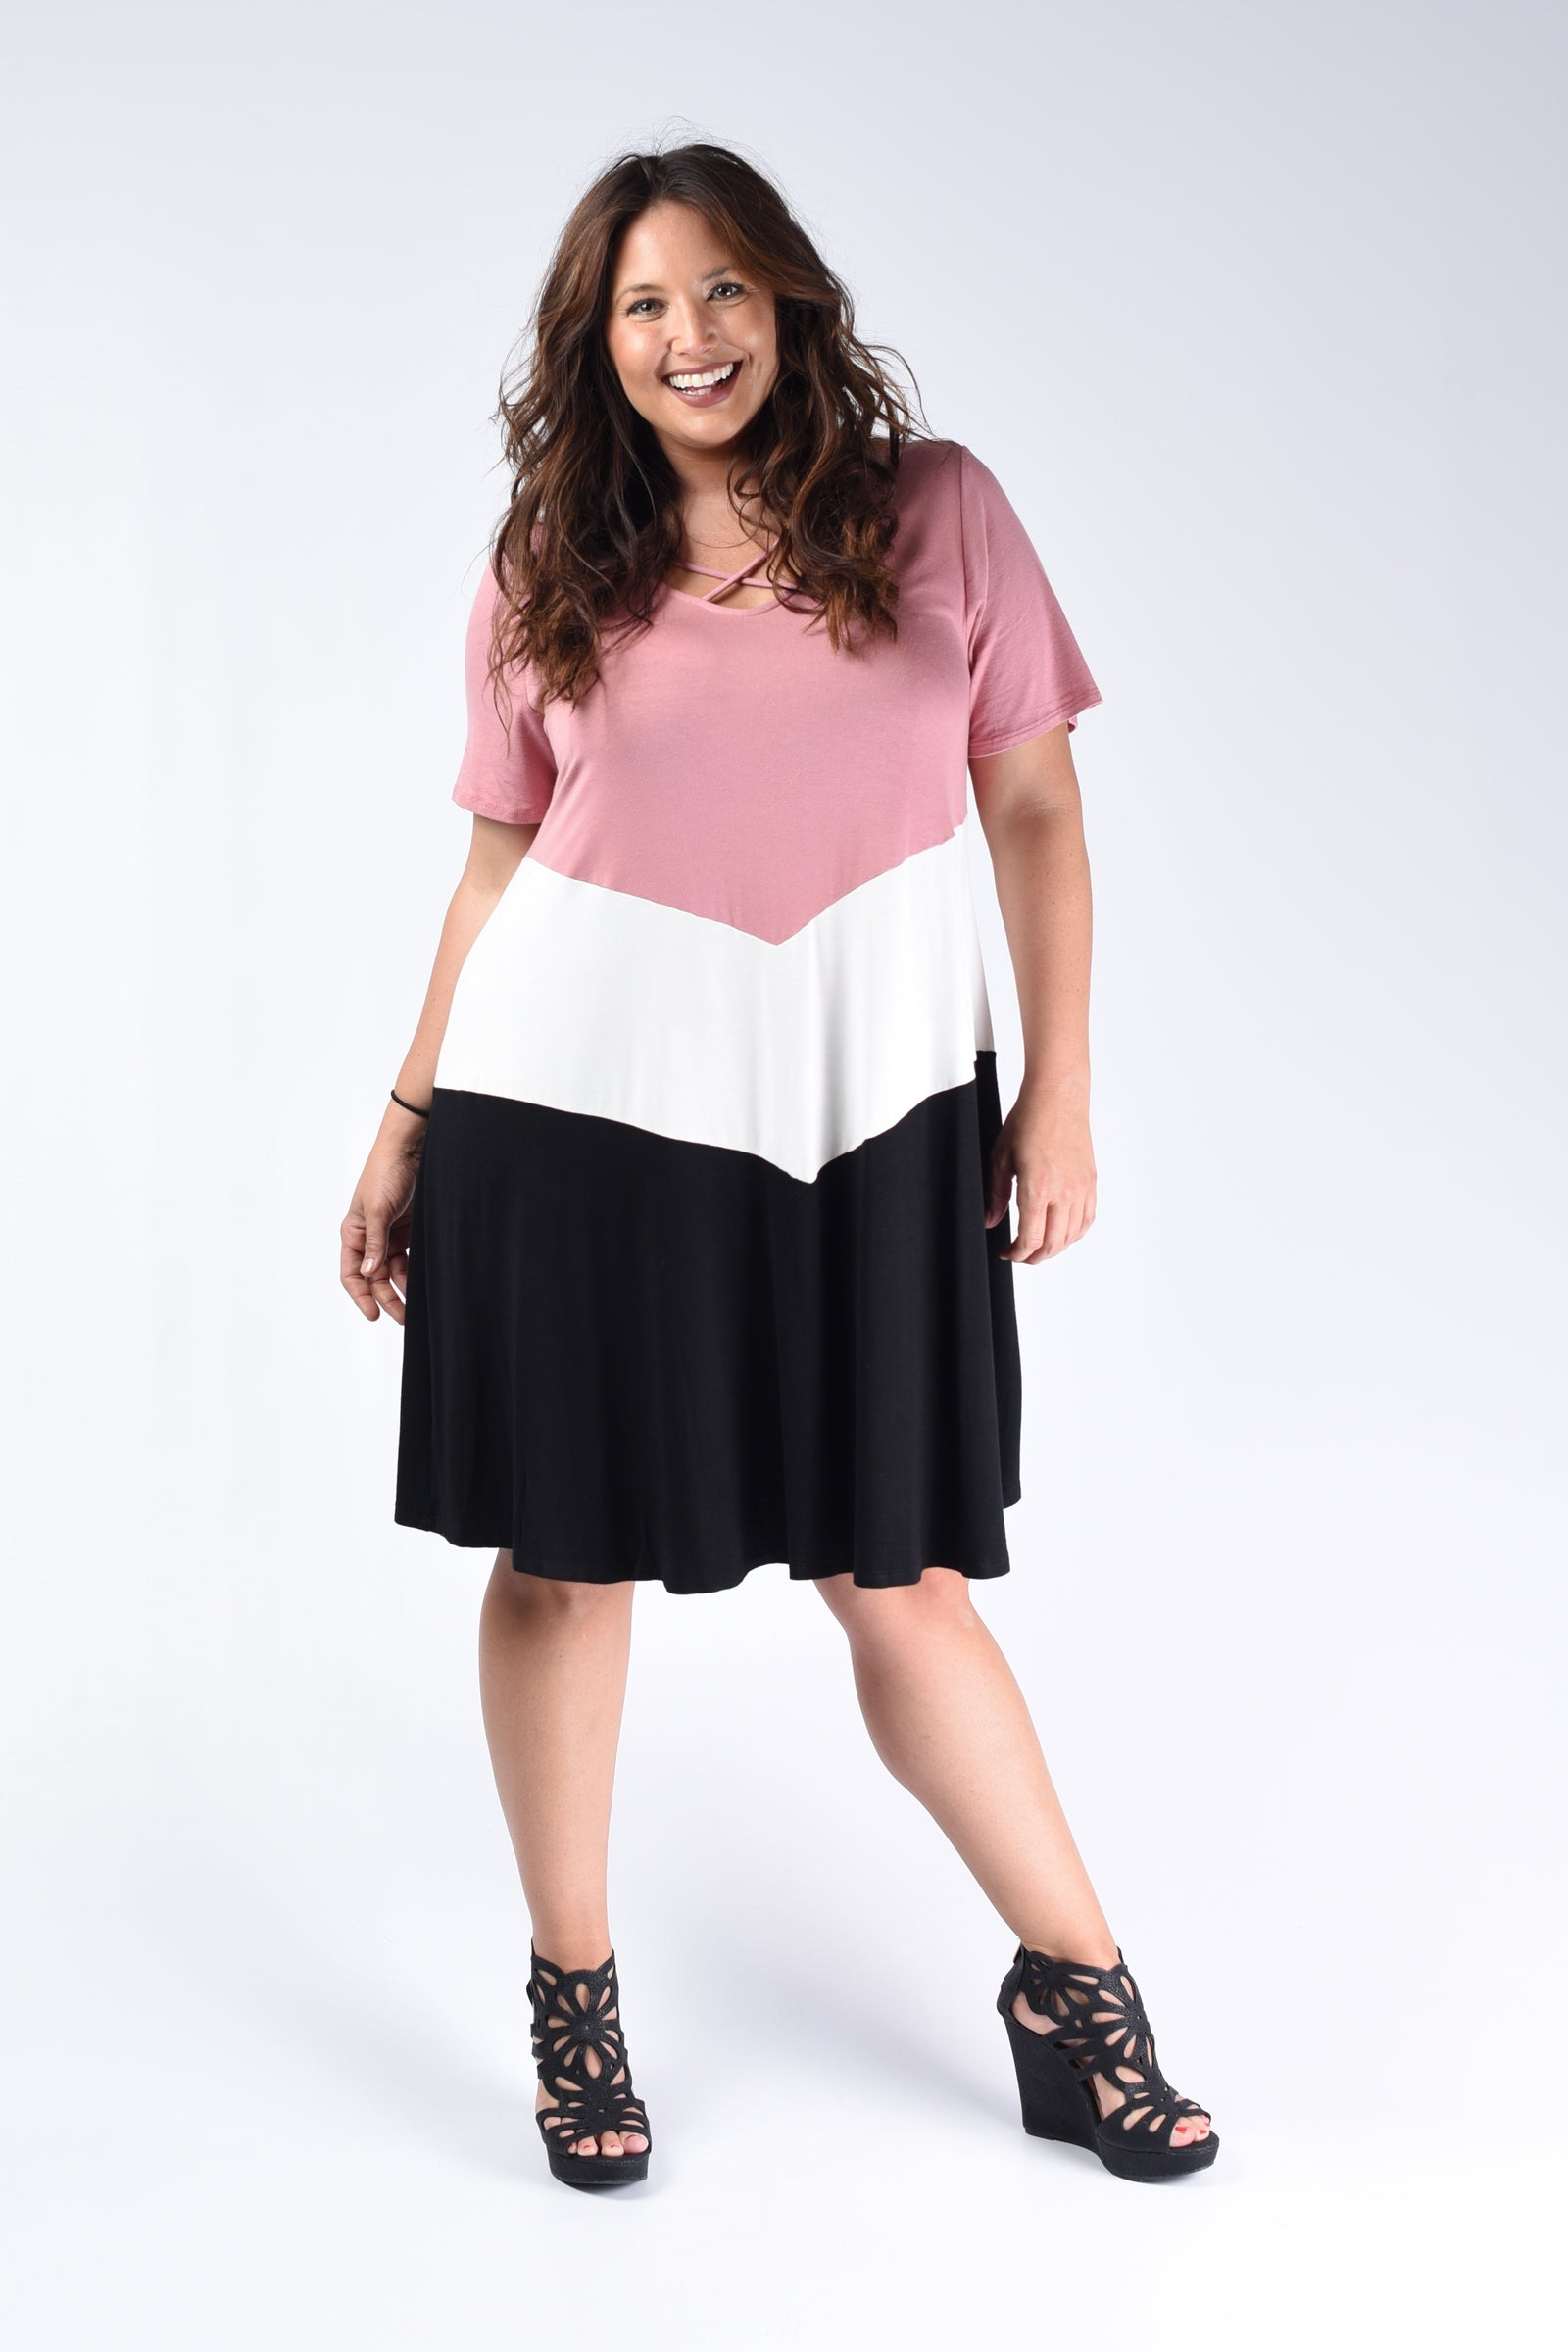 Dusty Rose Color Block Dress - www.mycurvystore.com - Curvy Boutique - Plus Size